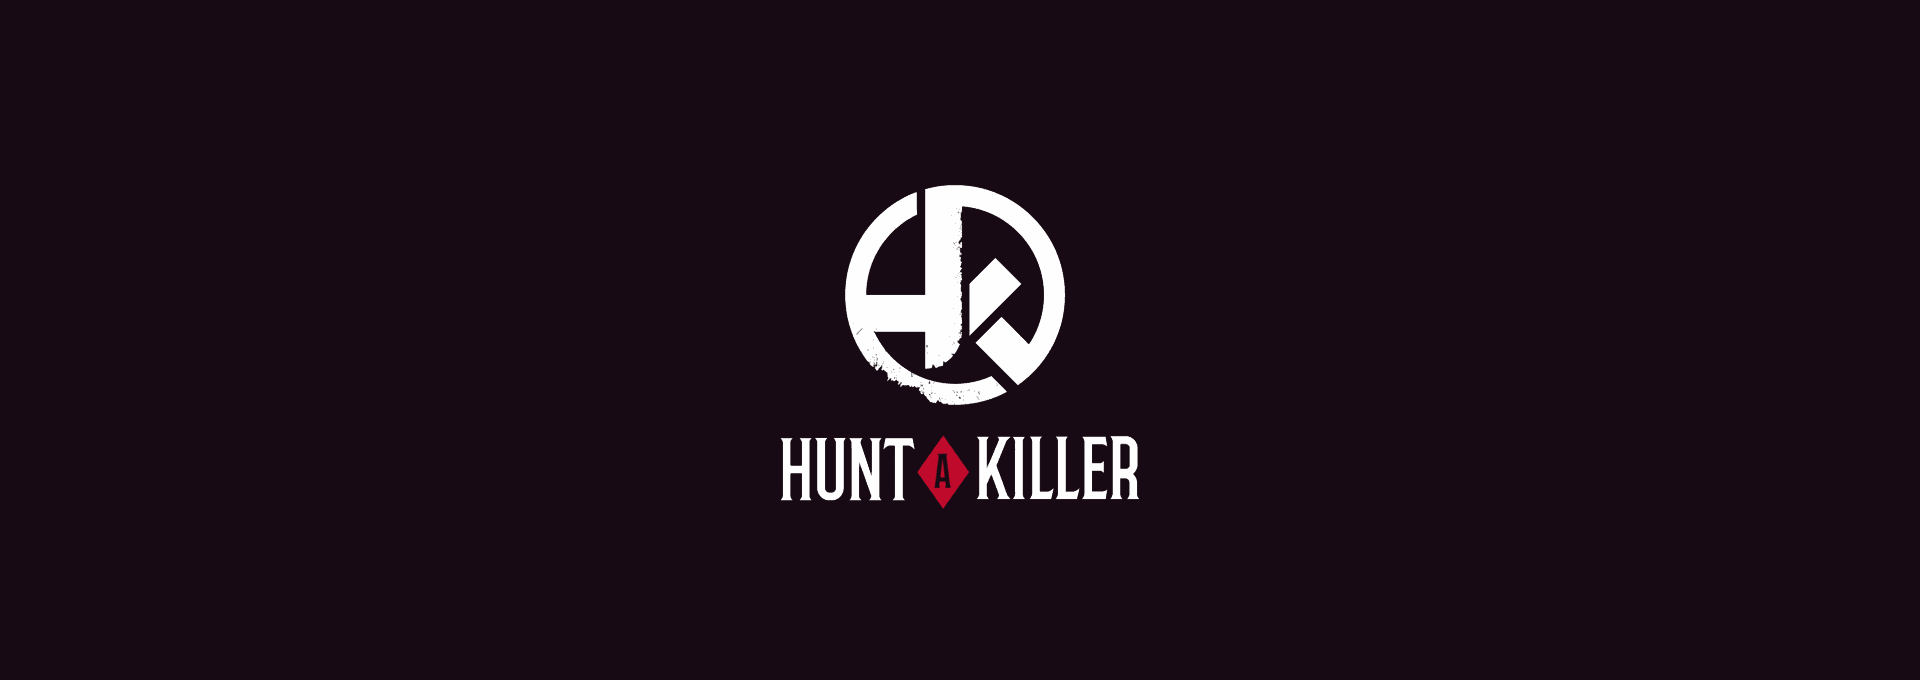 Hunt A Killer Review. You have to think like a killer to find one